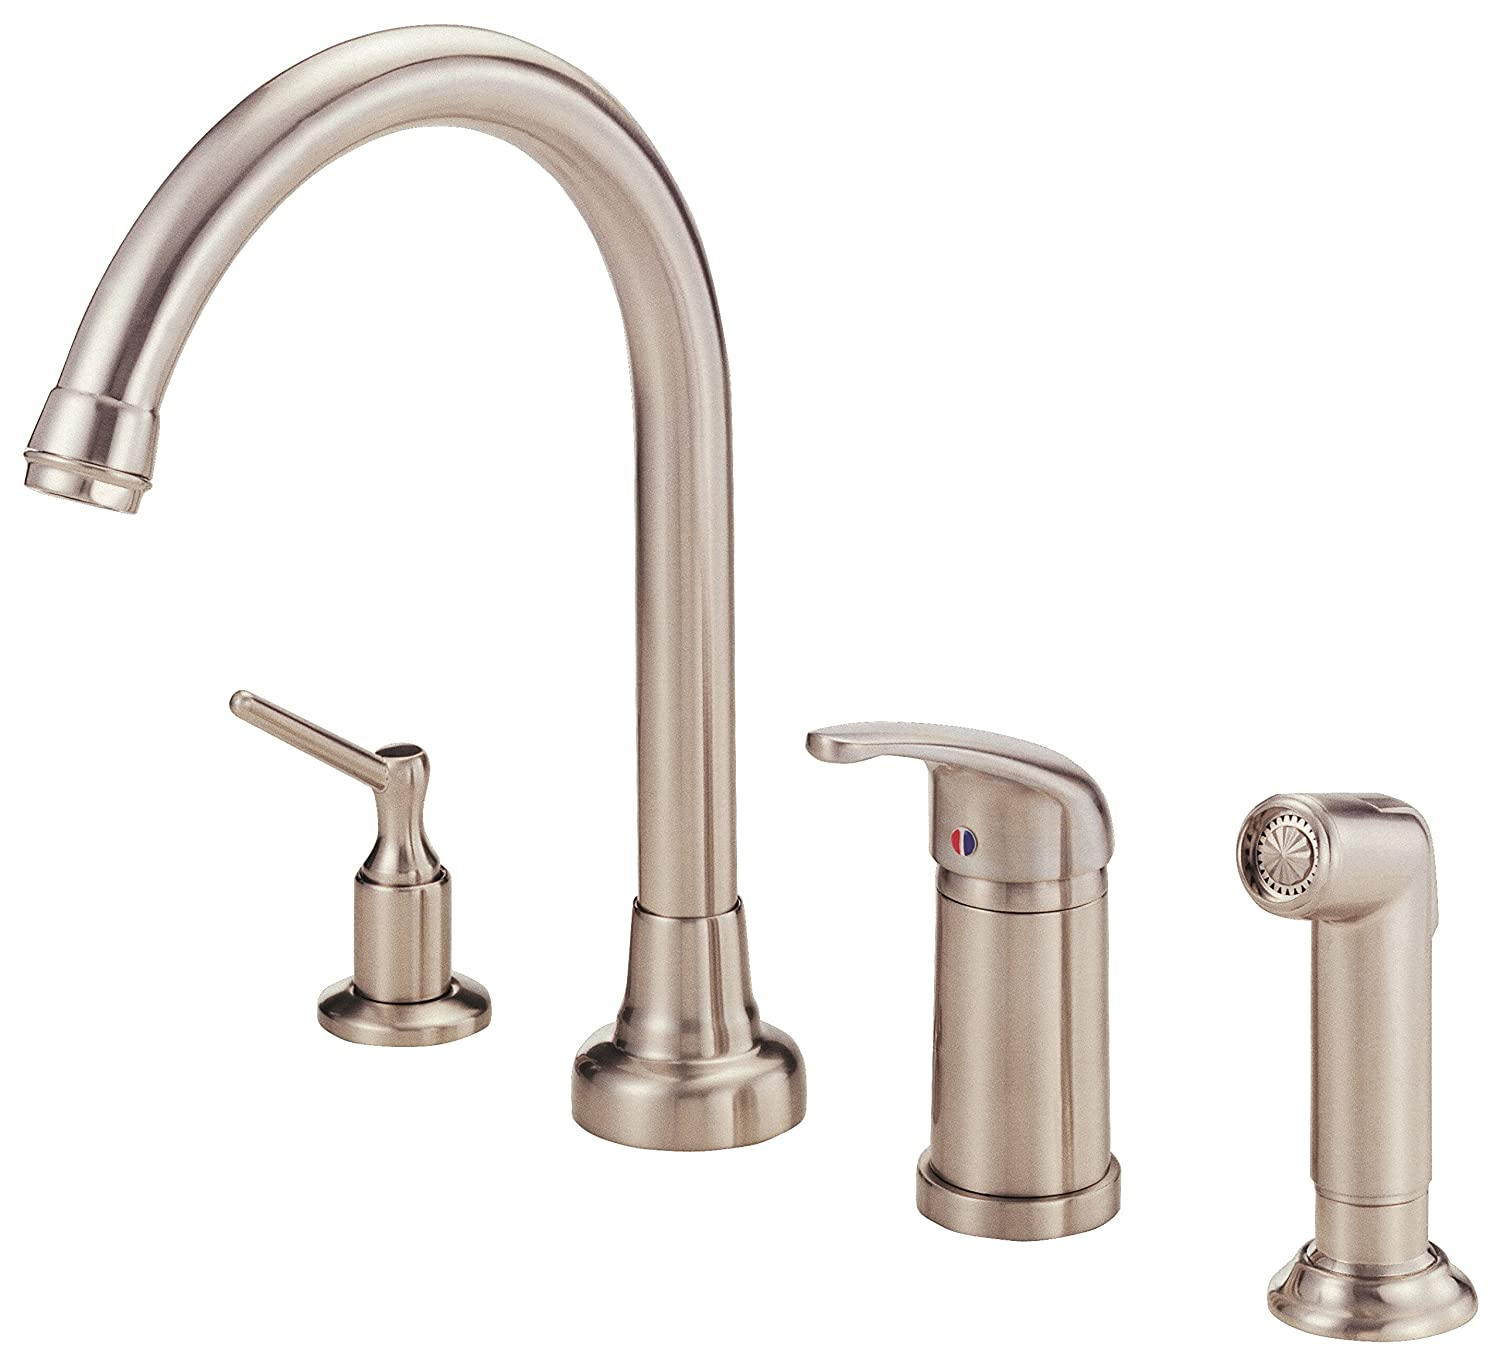 Charmant Danze D409112SS Melrose Single Handle High Rise Kitchen Faucet With Side  Spray And Soap Dispenser, Stainless Steel     Amazon.com